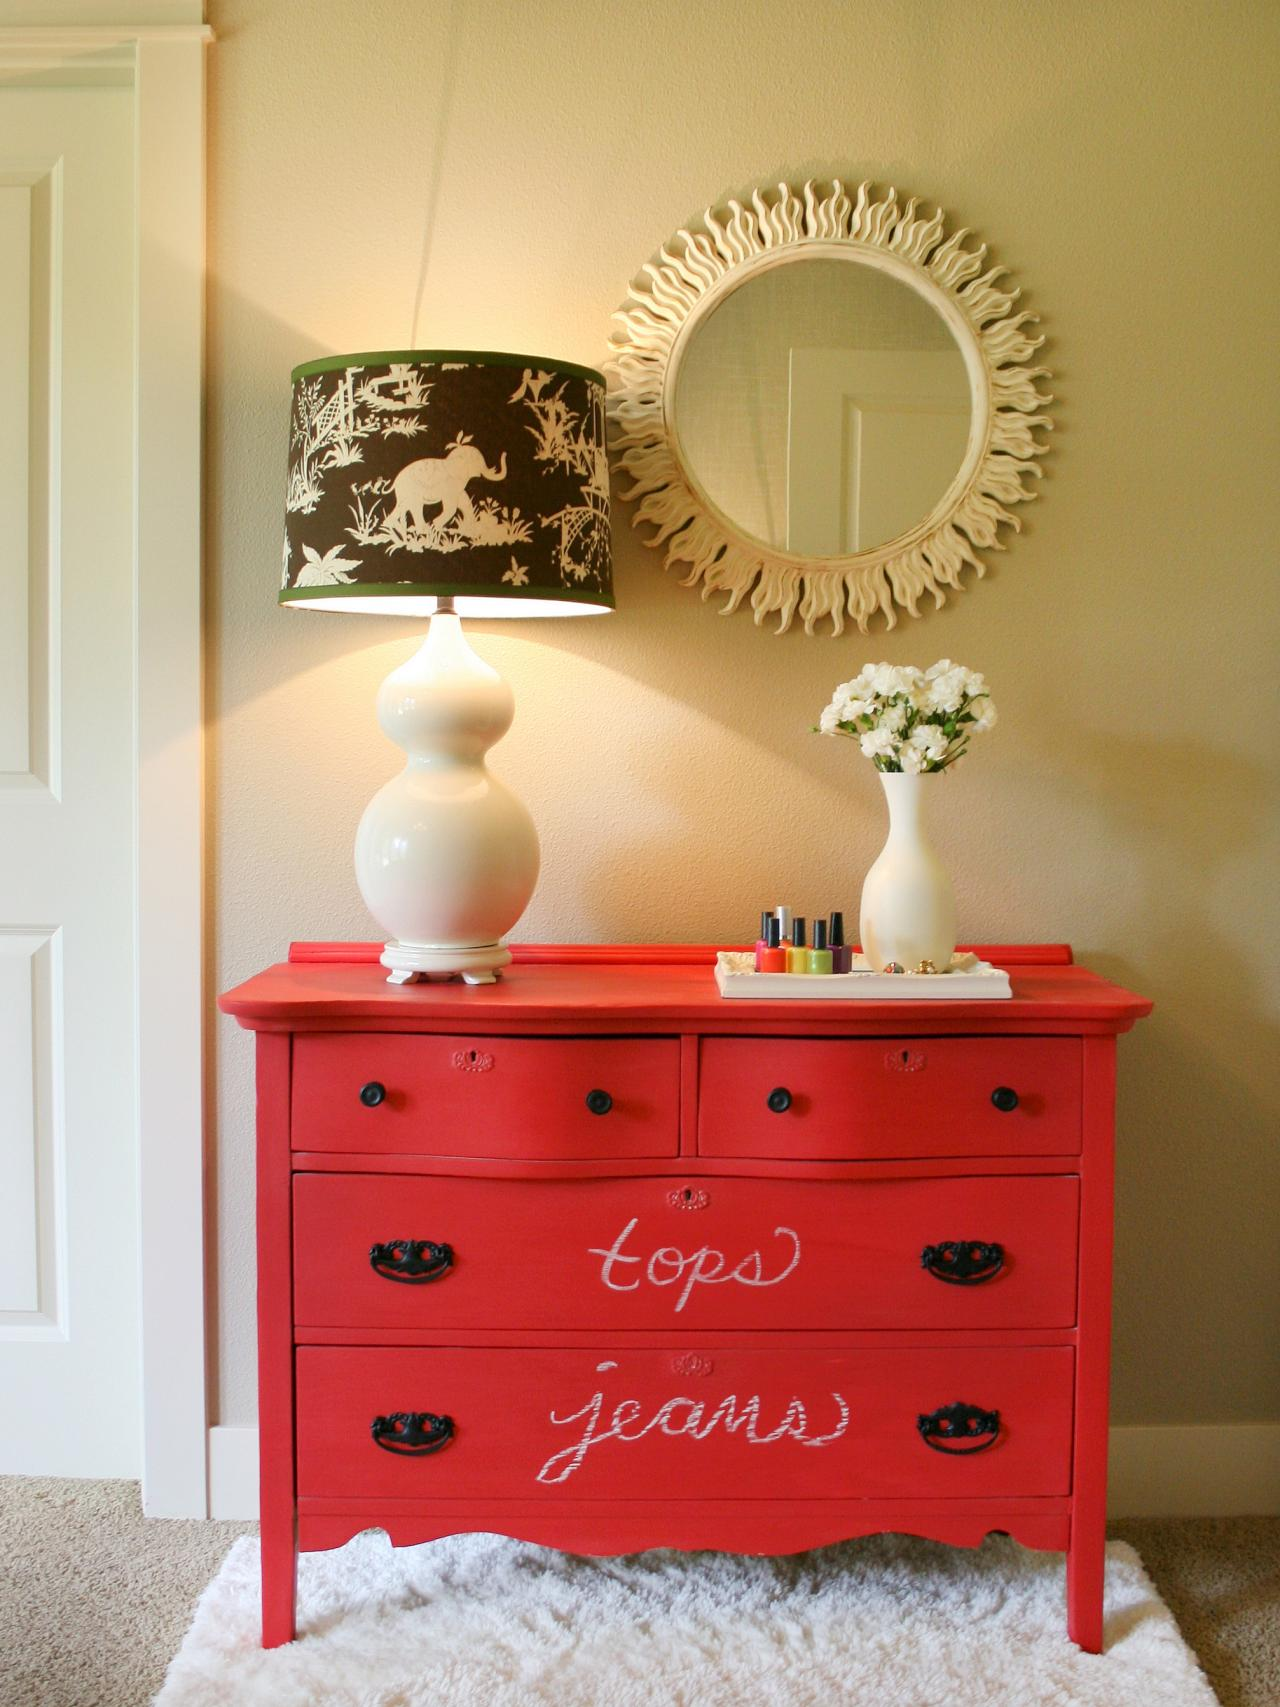 Create a colorful chalkboard dresser hgtv for Ideas for painting a dresser